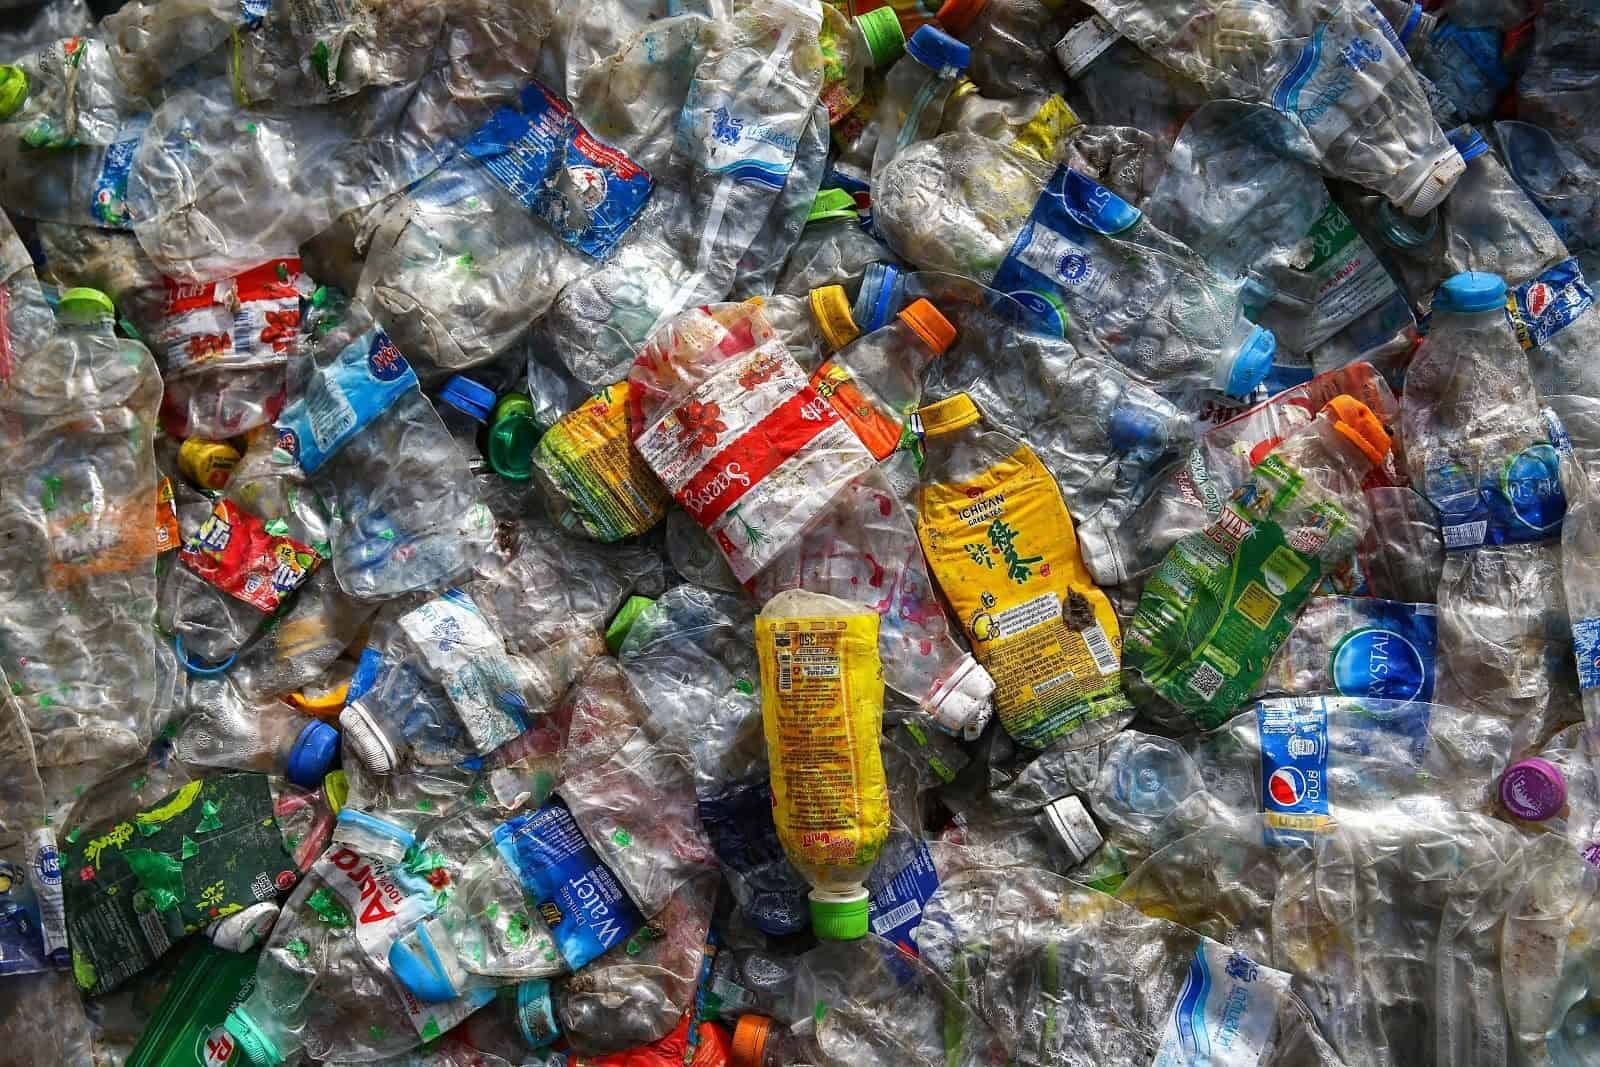 Plastic Free July – Together We Can Heal the Planet